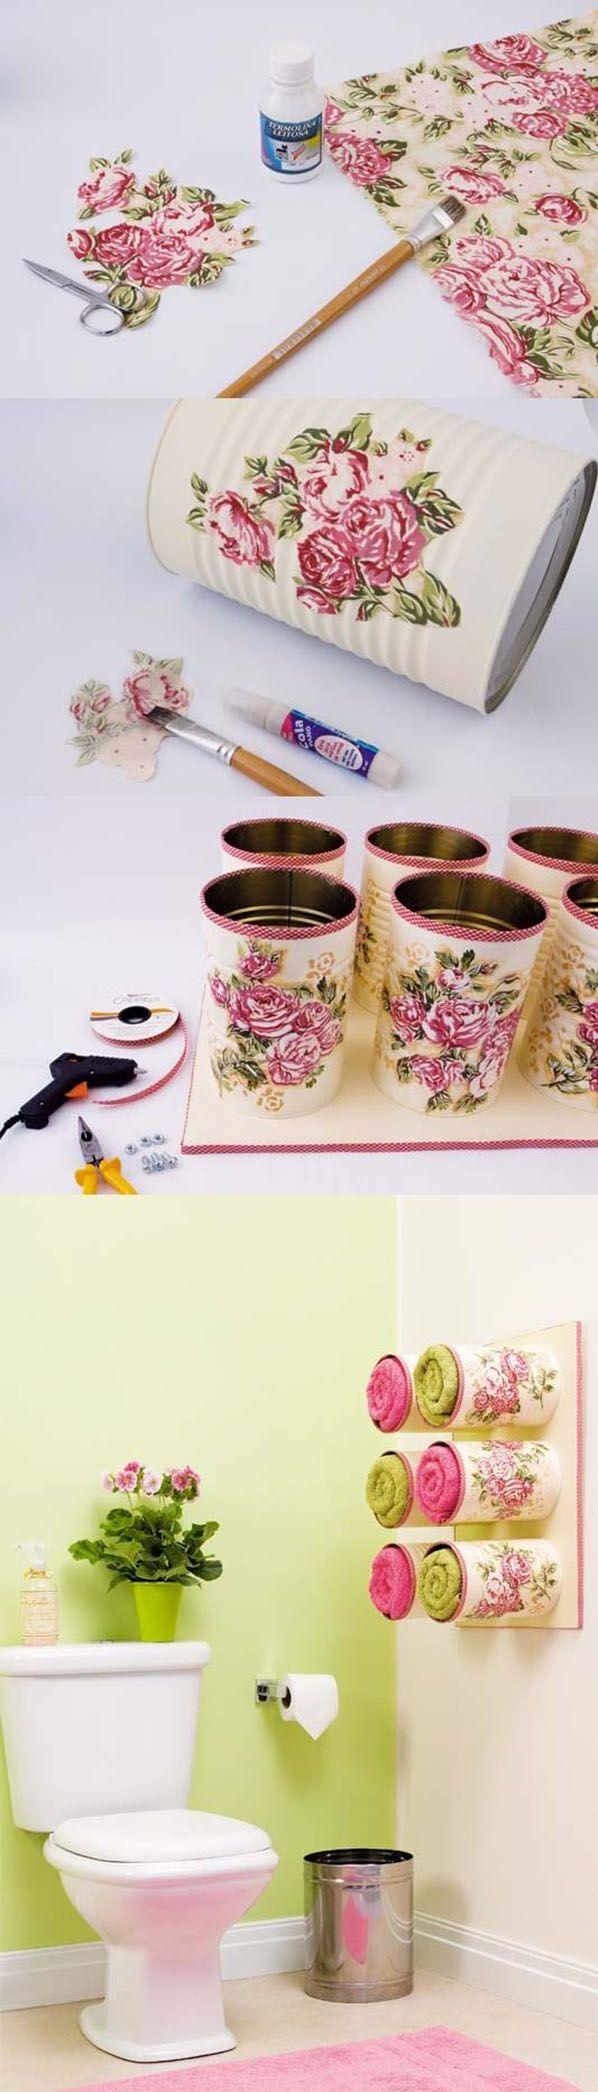 Beautiful Craft | DIY & Crafts Tutorials. Ugly design but I like the idea